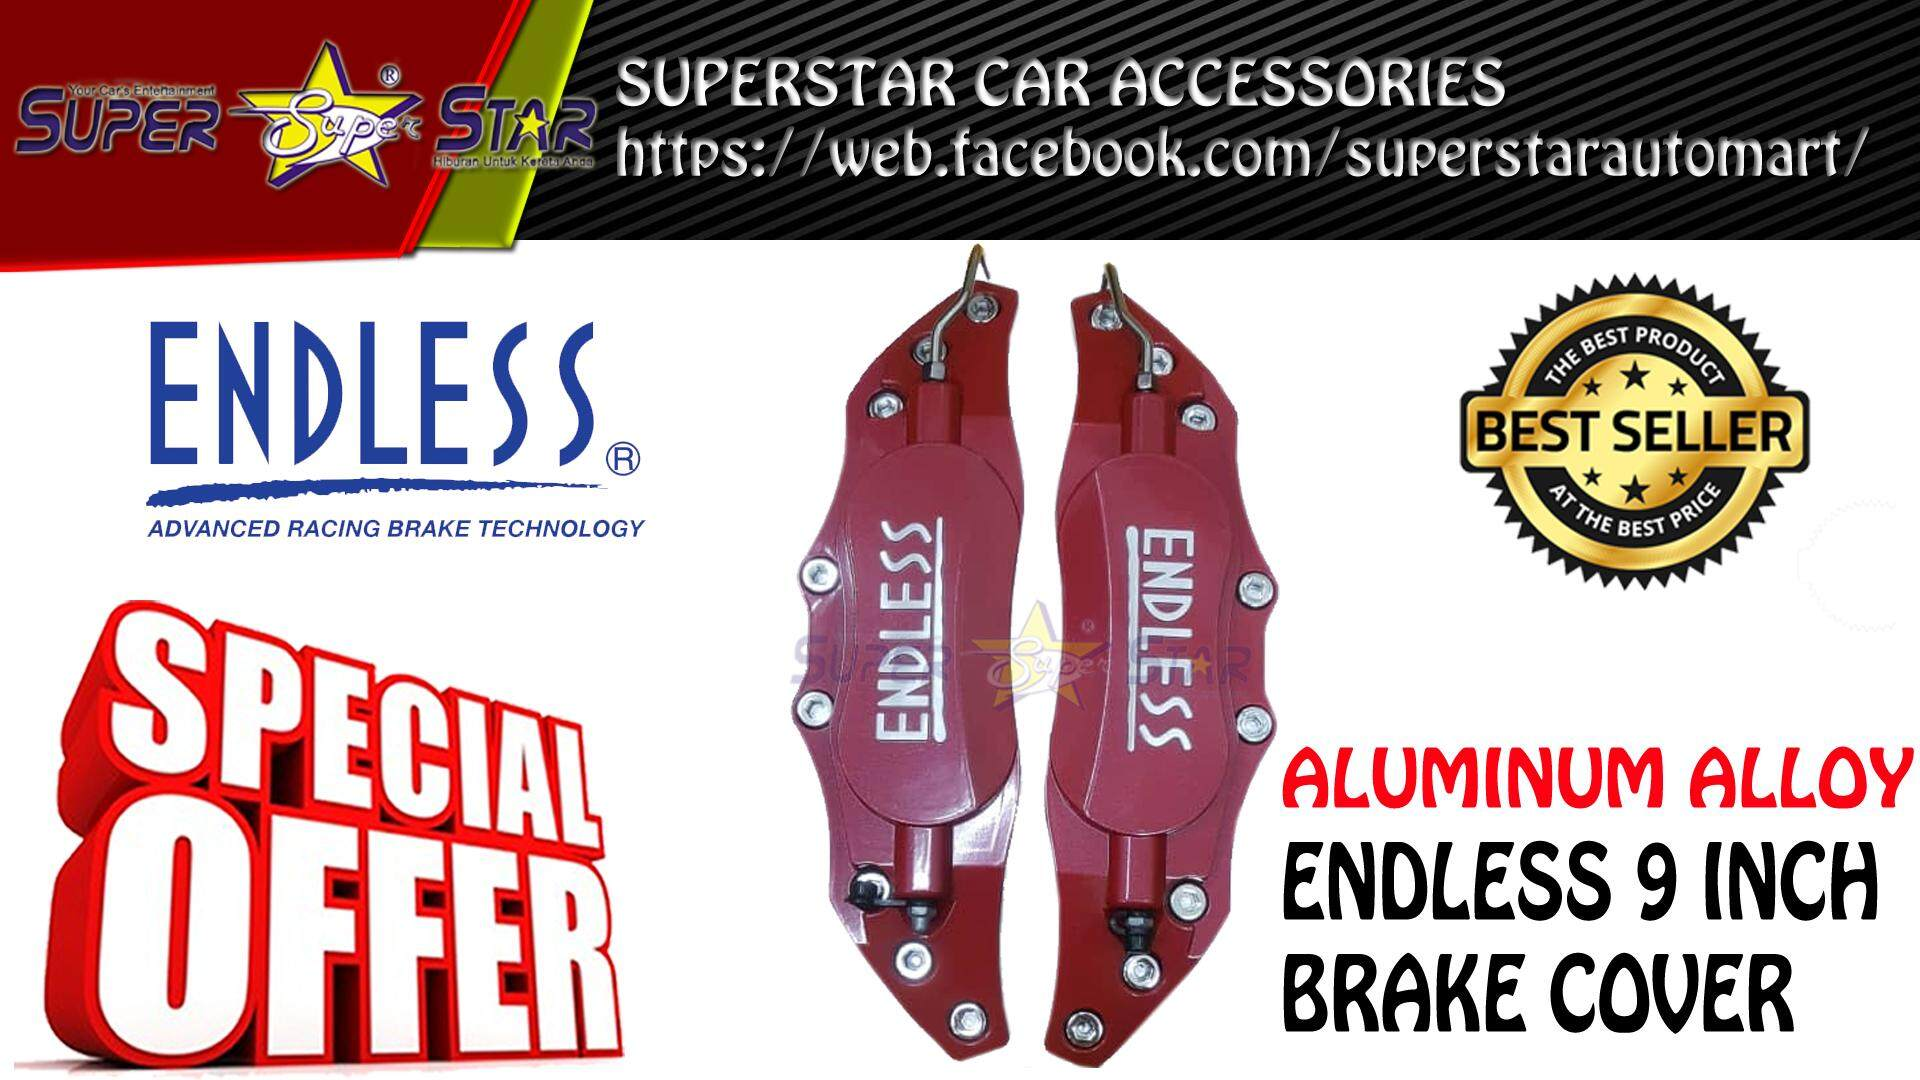 ENDLESS 9 INCH BRAKE COVER (RED)